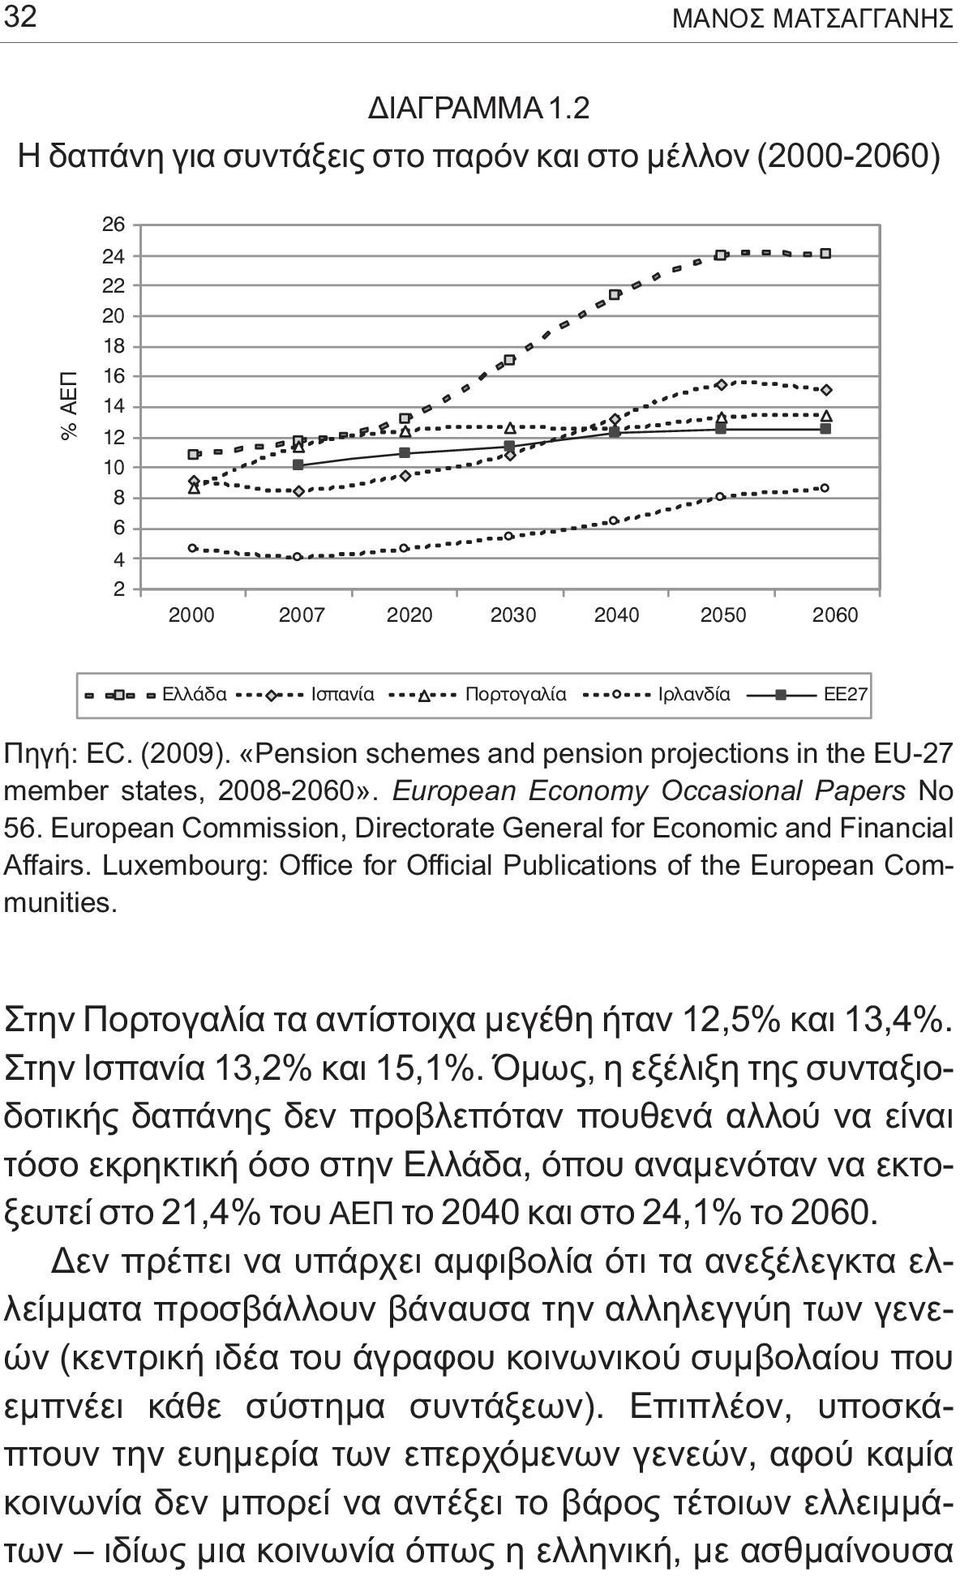 «Pension schemes and pension projections in the EU-27 member states, 2008-2060». European Economy Occasional Papers No 56. European Commission, Directorate General for Economic and Financial Affairs.